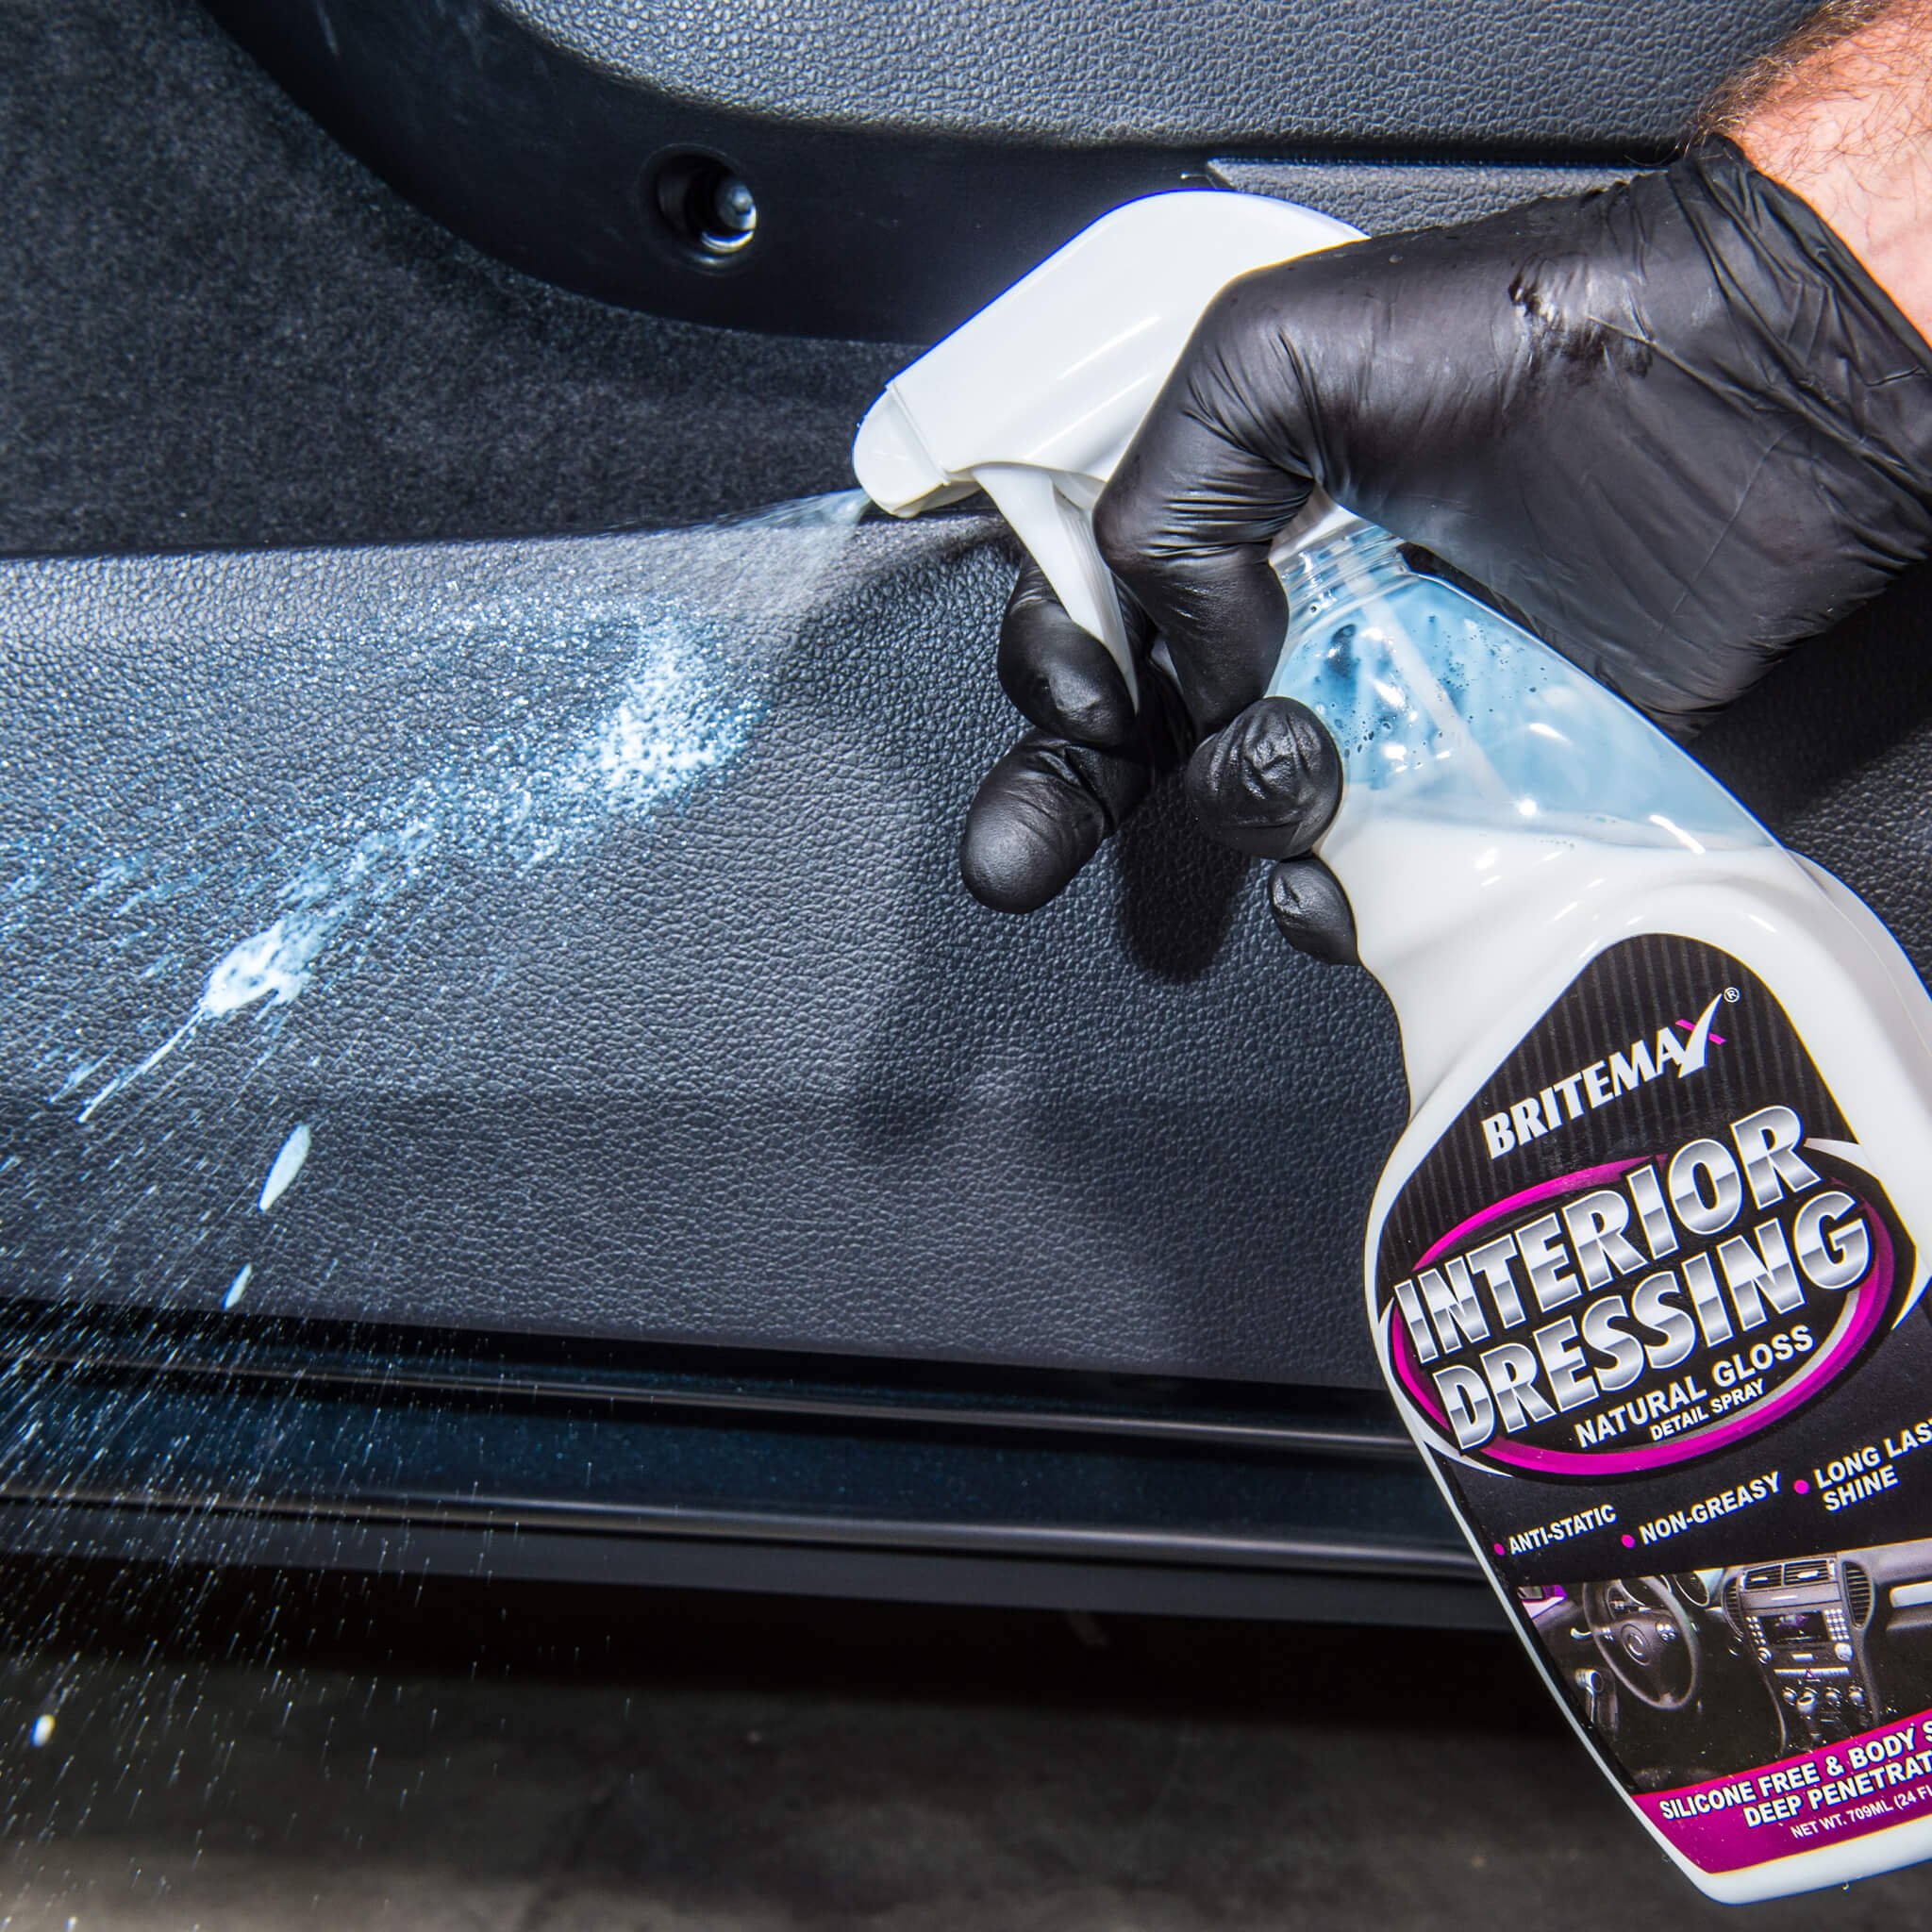 Britemax Interior Dressing Interior Car Detailing Spray